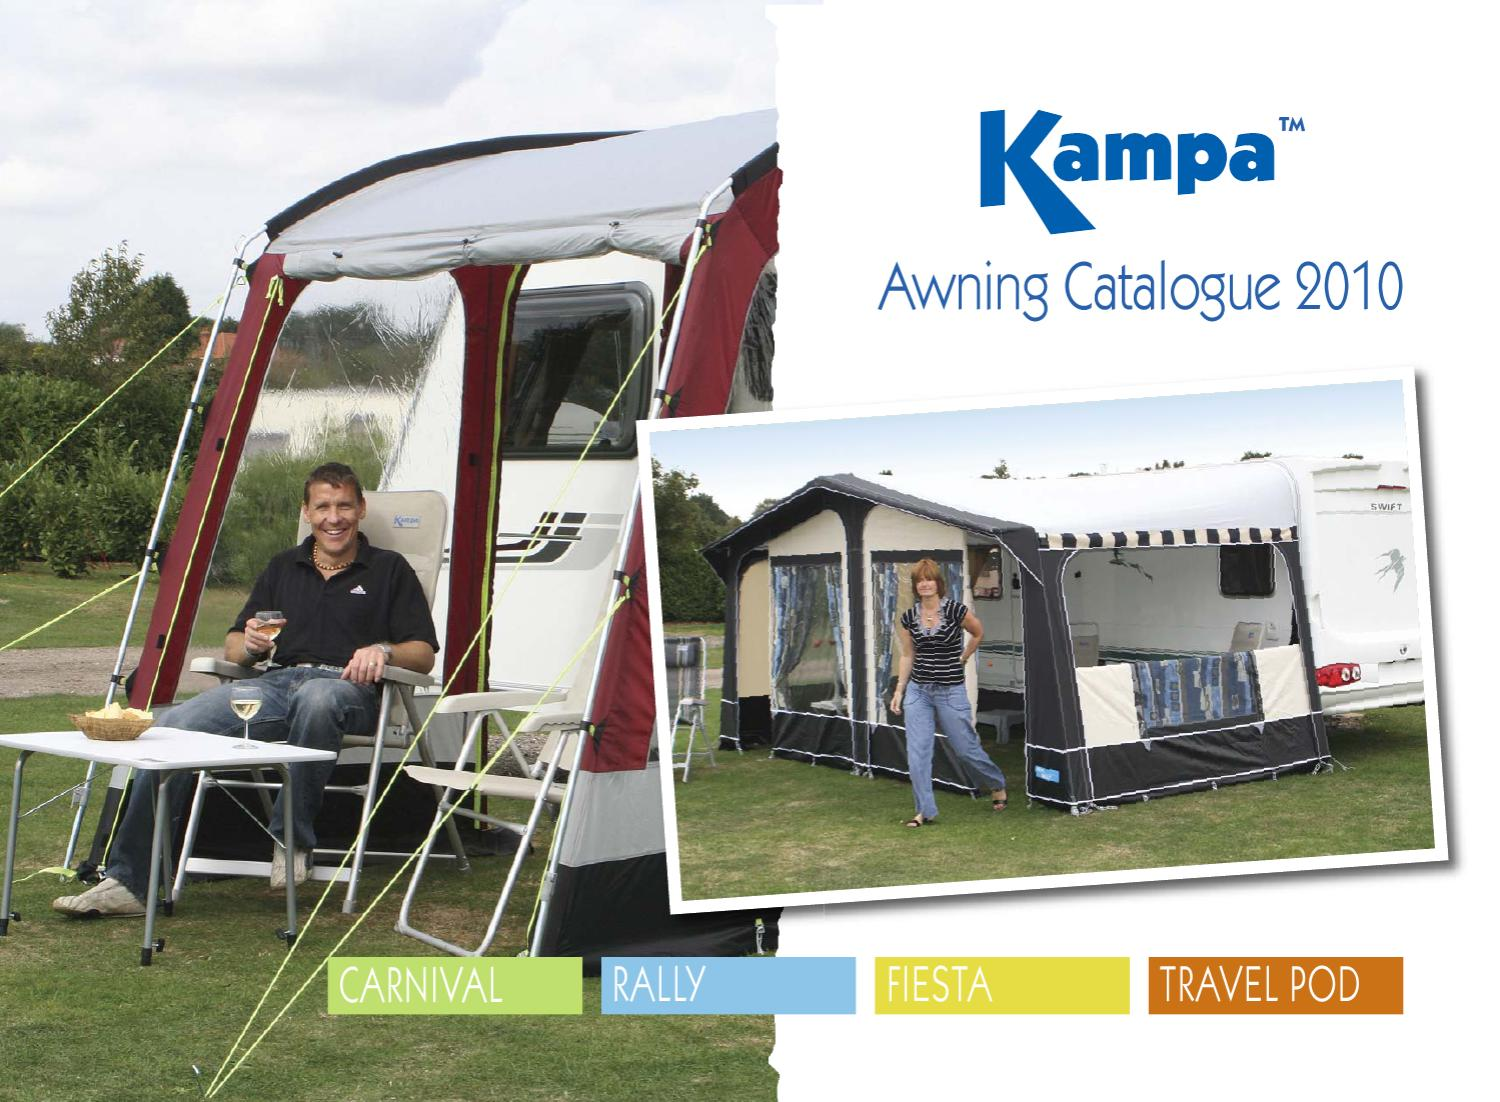 Kampa Awning Catalogue 2010 By Jon Shepherd